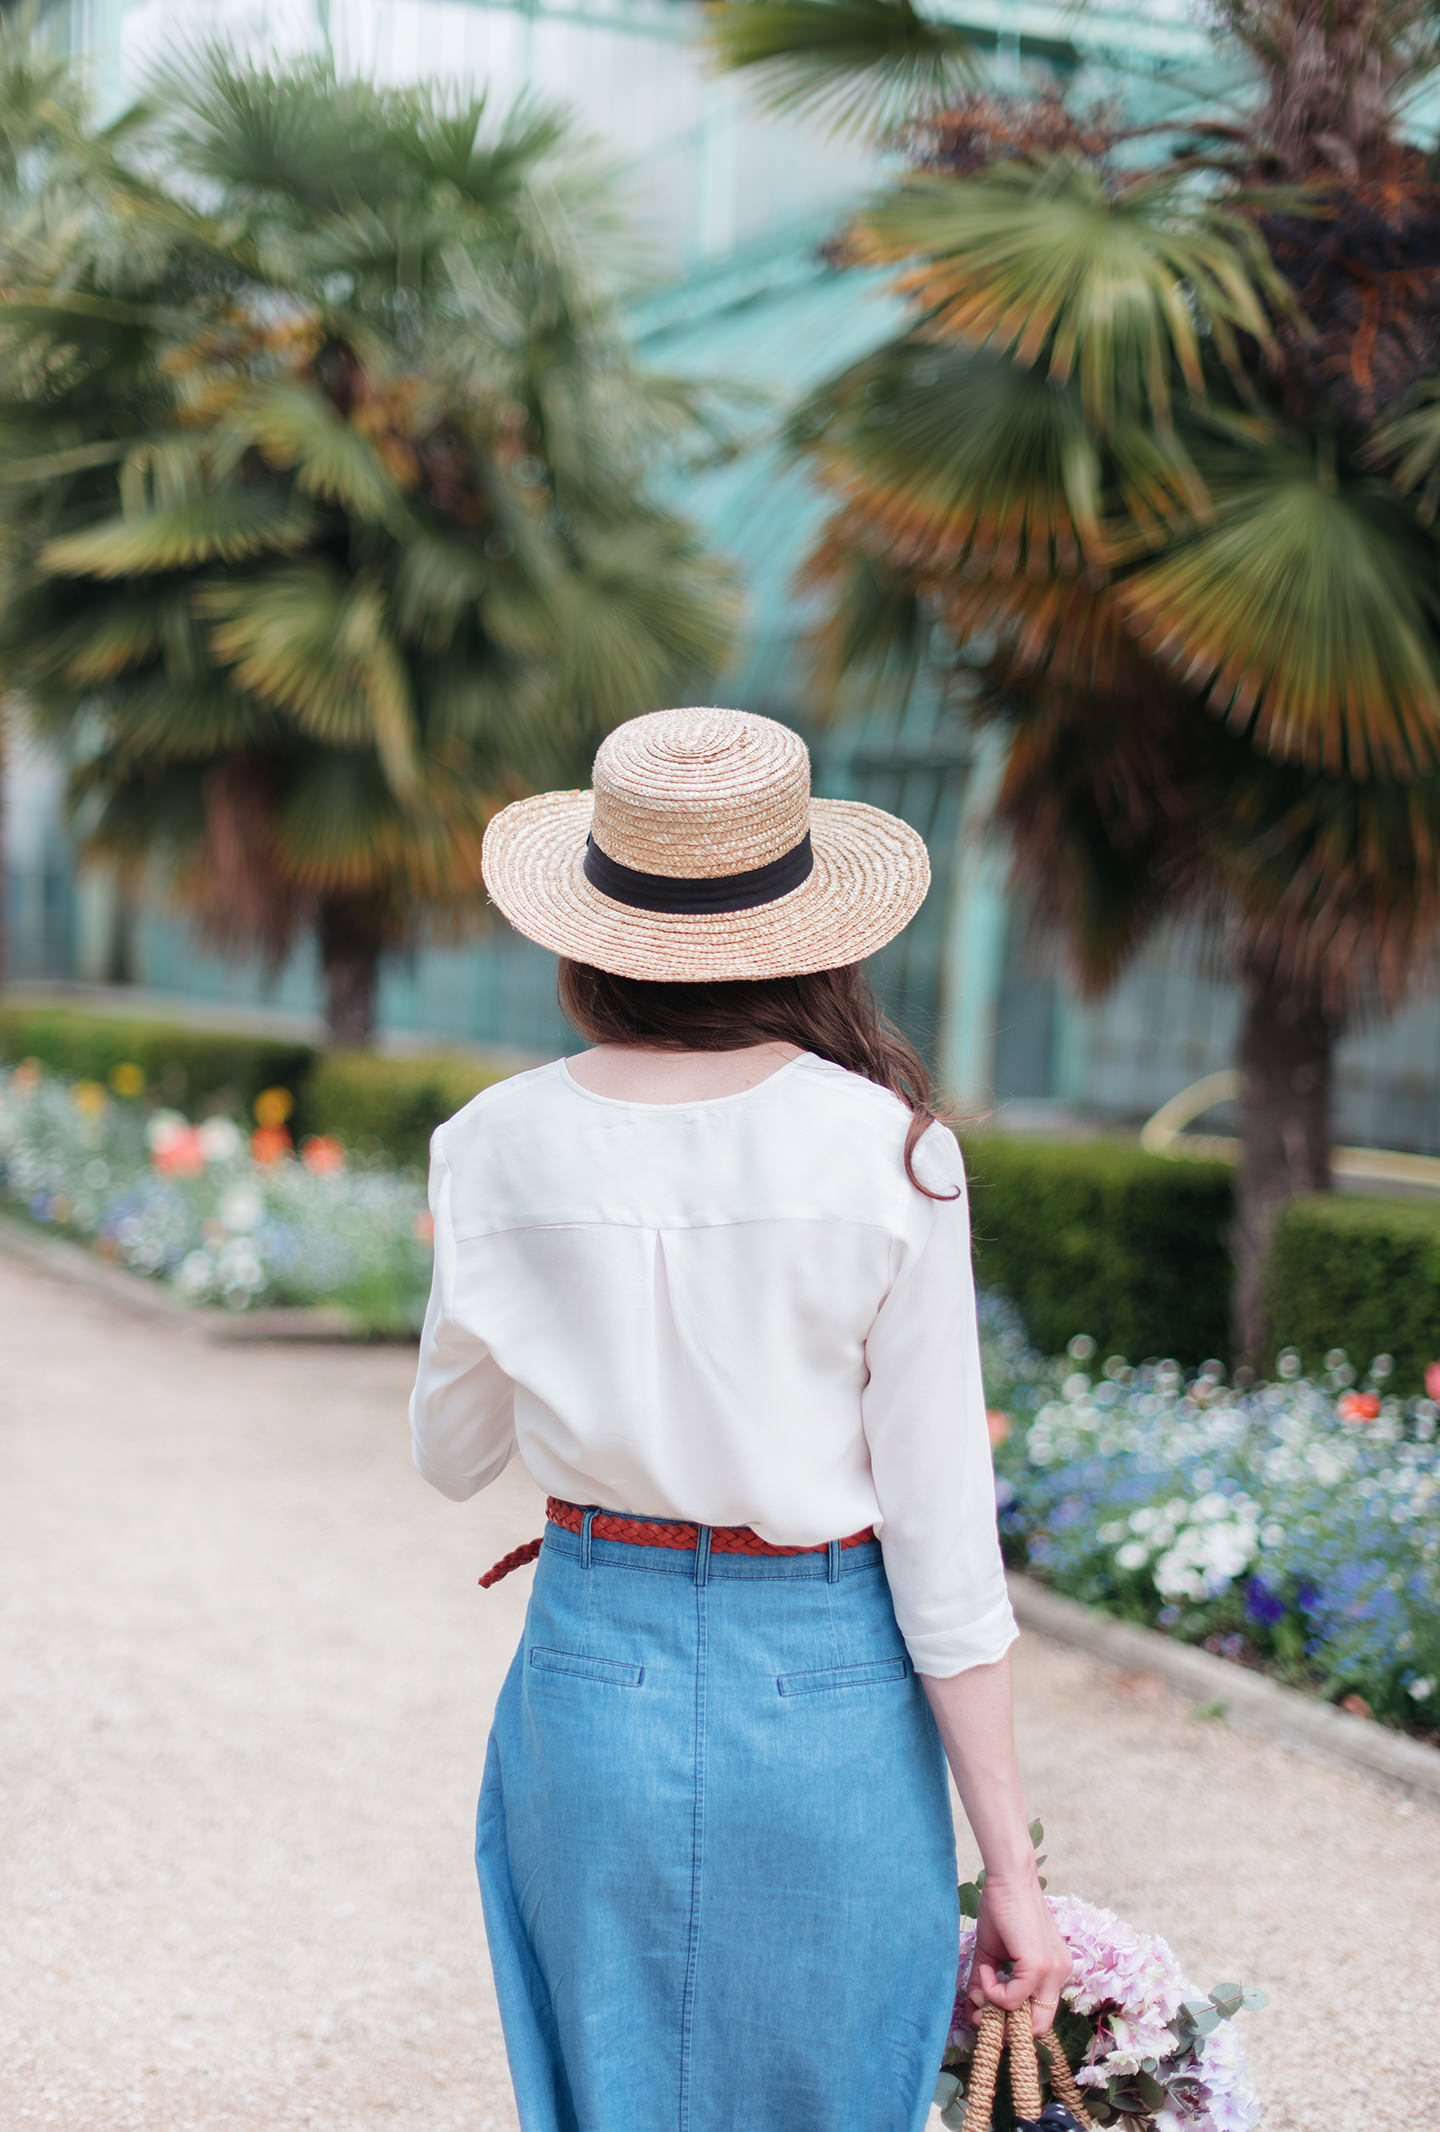 Blog-Mode-And-The-City-Looks-Jardin-Serres-Auteuil-Devernois-4